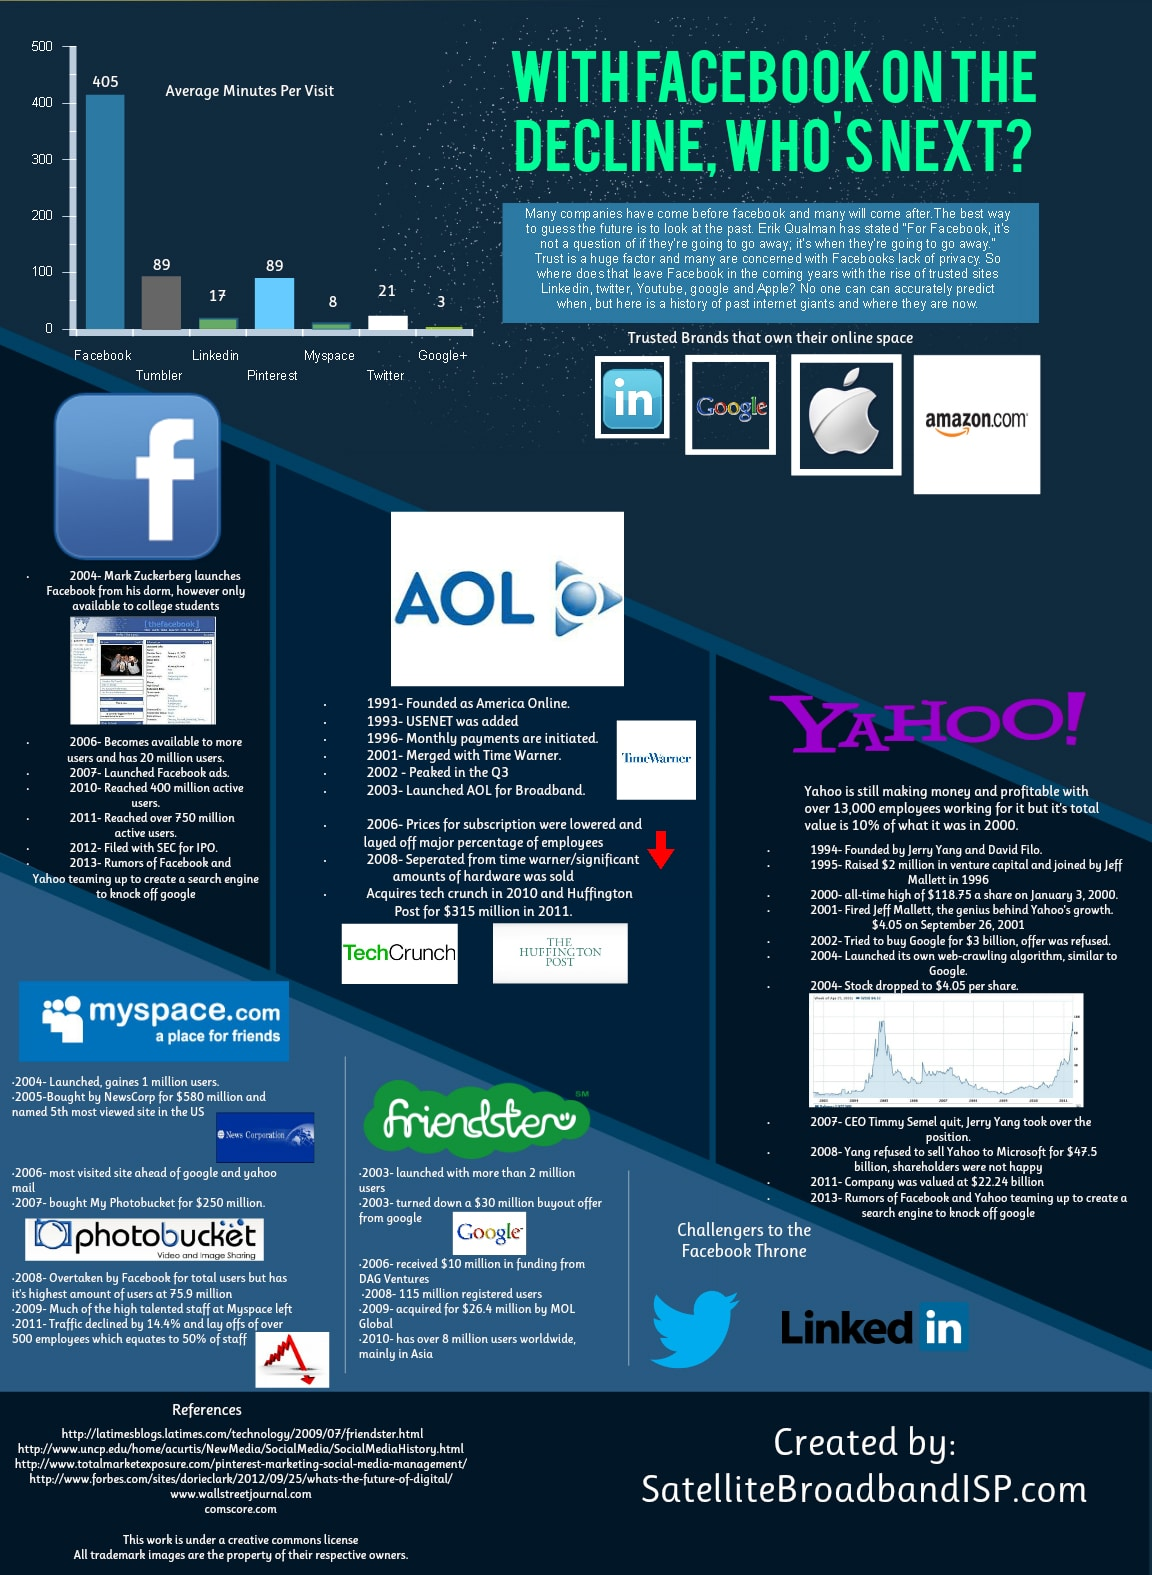 Facebook Usage Is On The Decline…So Who's Next? [Infographic]